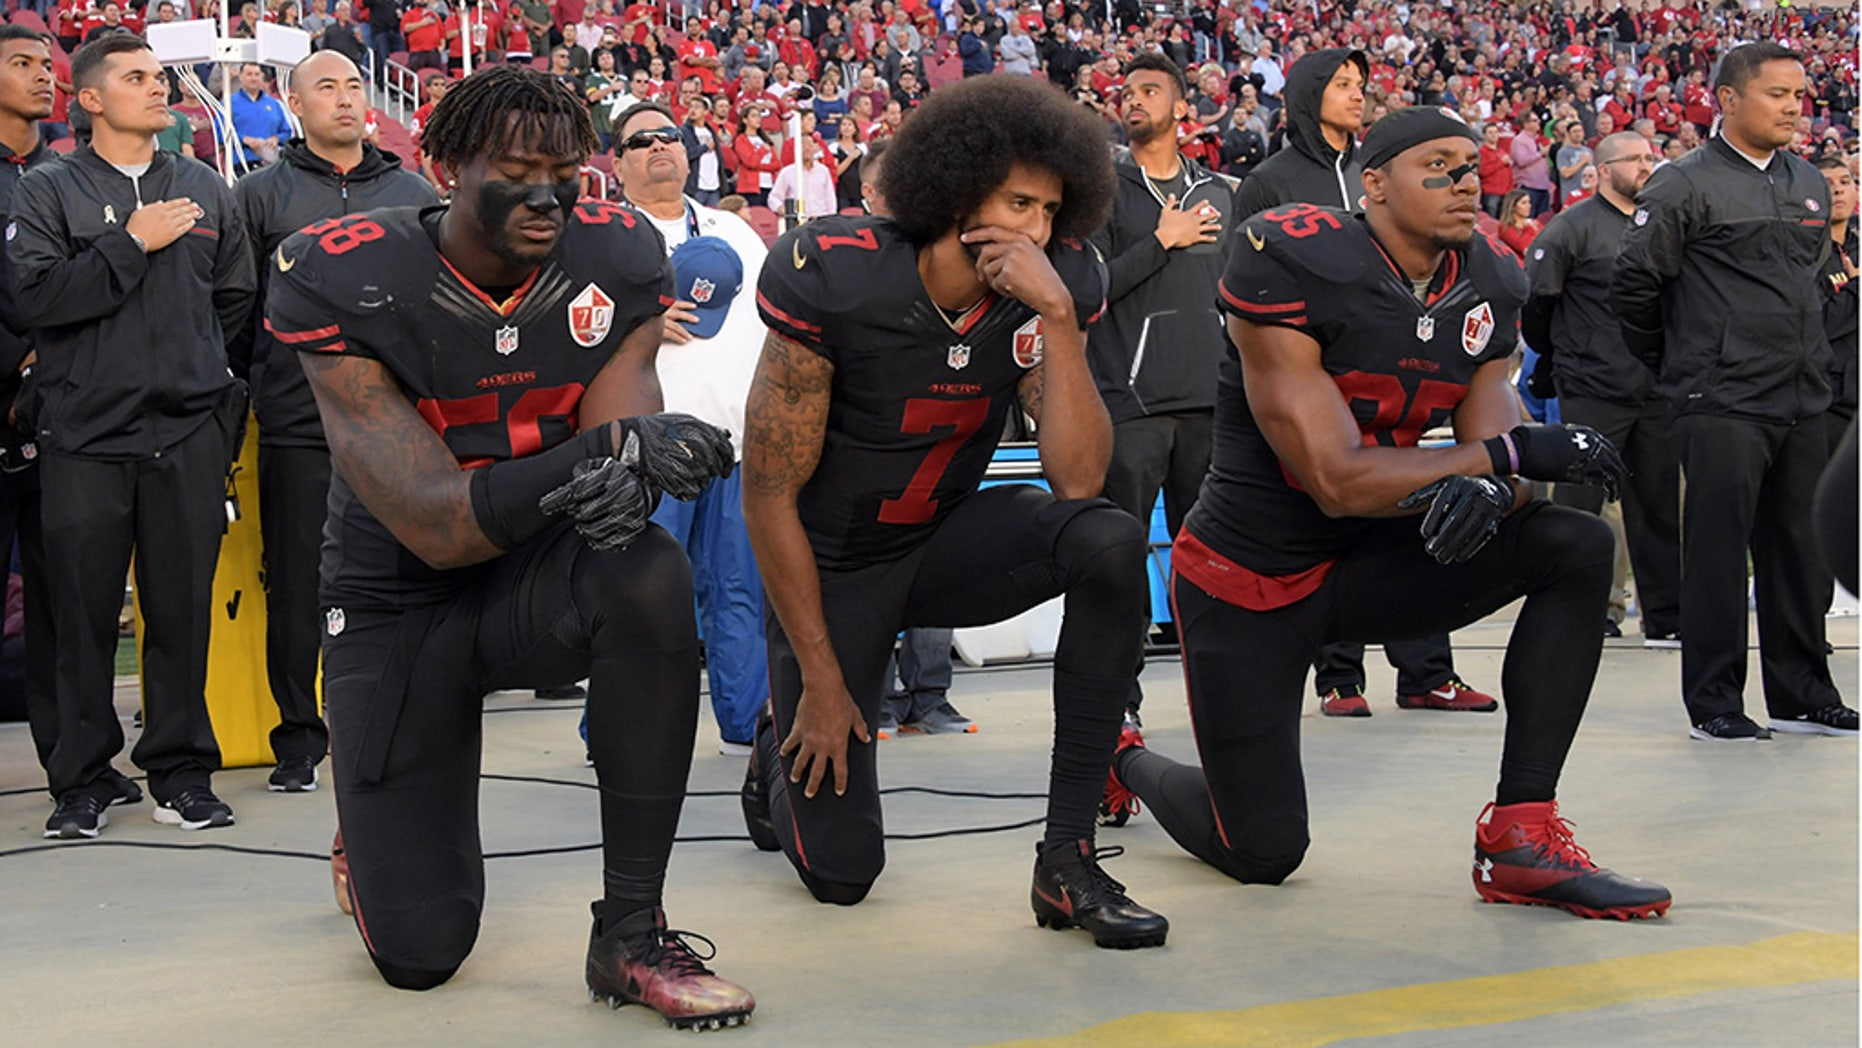 San Francisco 49ers linebacker Eli Harold (58), quarterback Colin Kaepernick (7) and free safety Eric Reid (35) kneel in protest during the playing of the national anthem before a NFL game in 2016. (USA TODAY Sports)